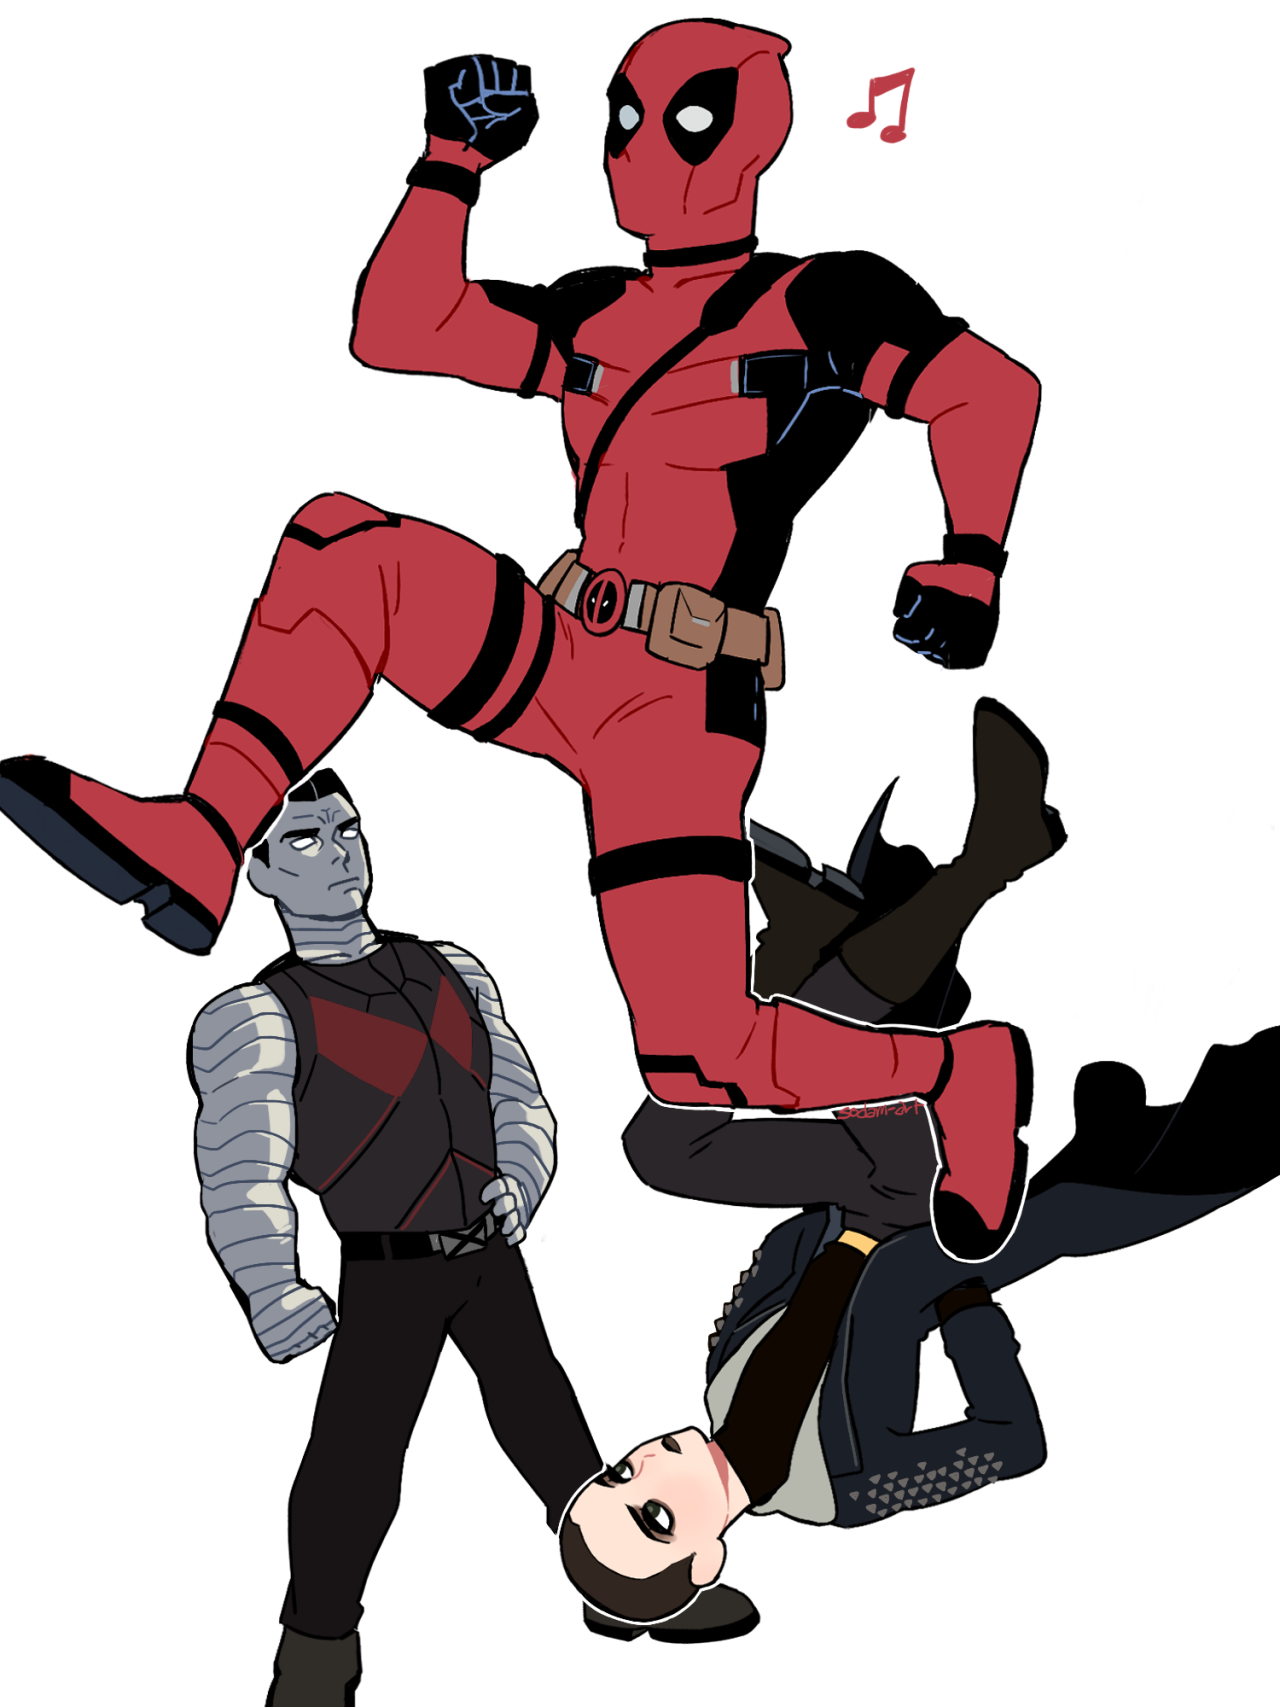 Xenomorph clipart deadpool Negasonic Deadpool Teenage Colossus Warhead